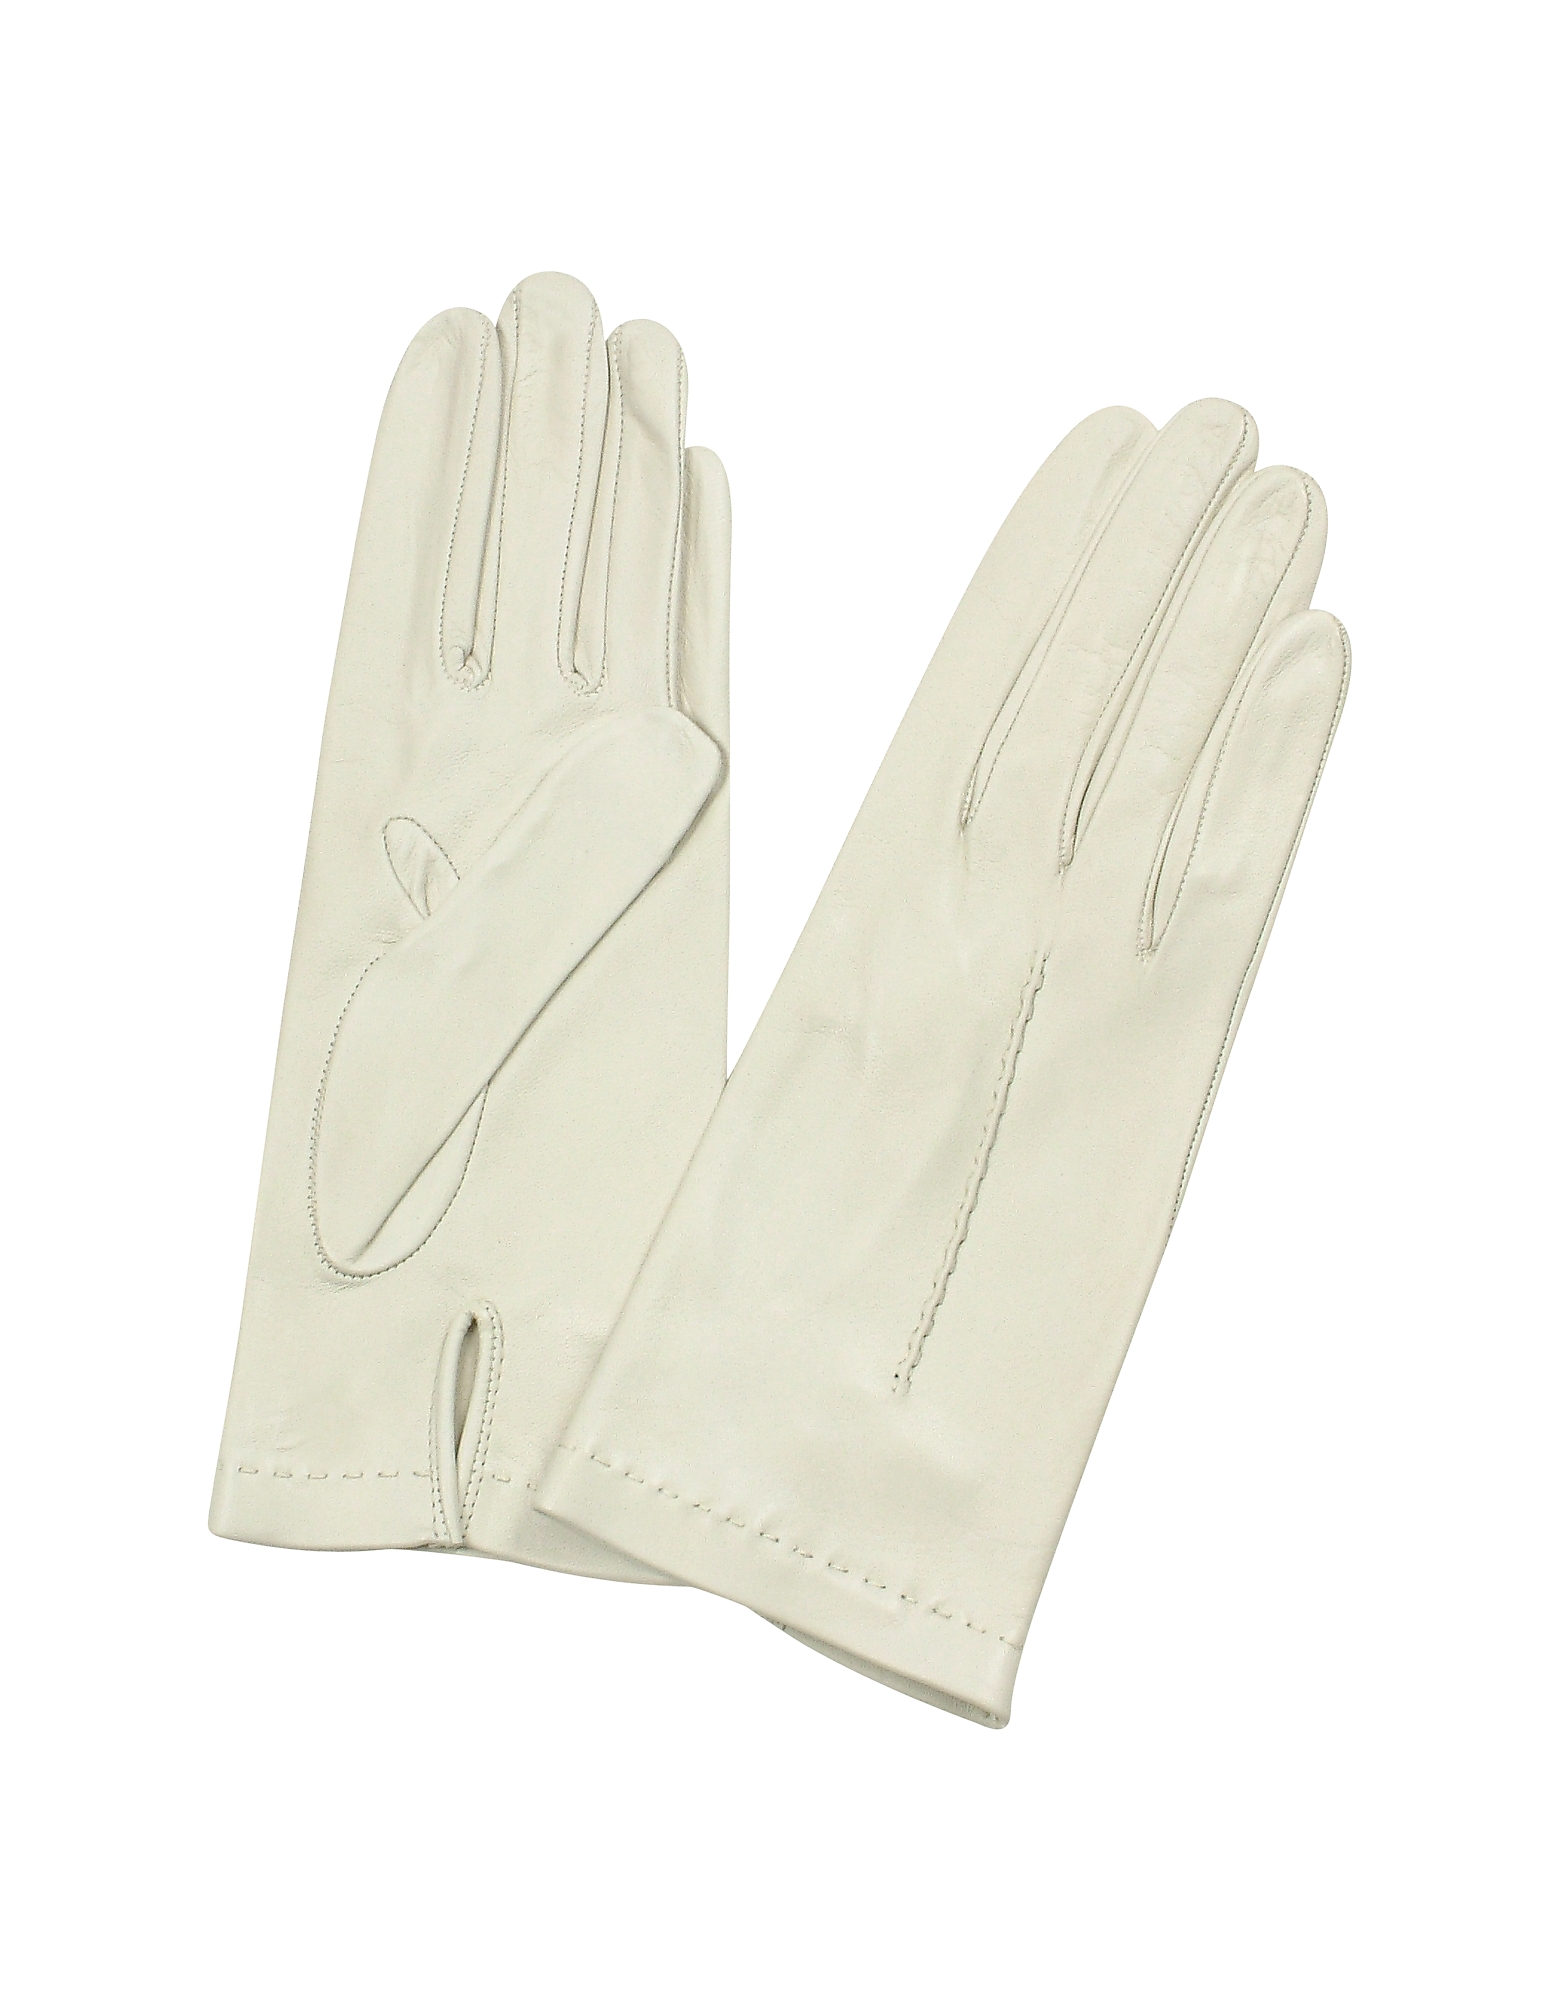 Victorian Gloves | Victorian Accessories Forzieri Designer Womens Gloves Womens Ivory Unlined Italian Leather Gloves $161.00 AT vintagedancer.com